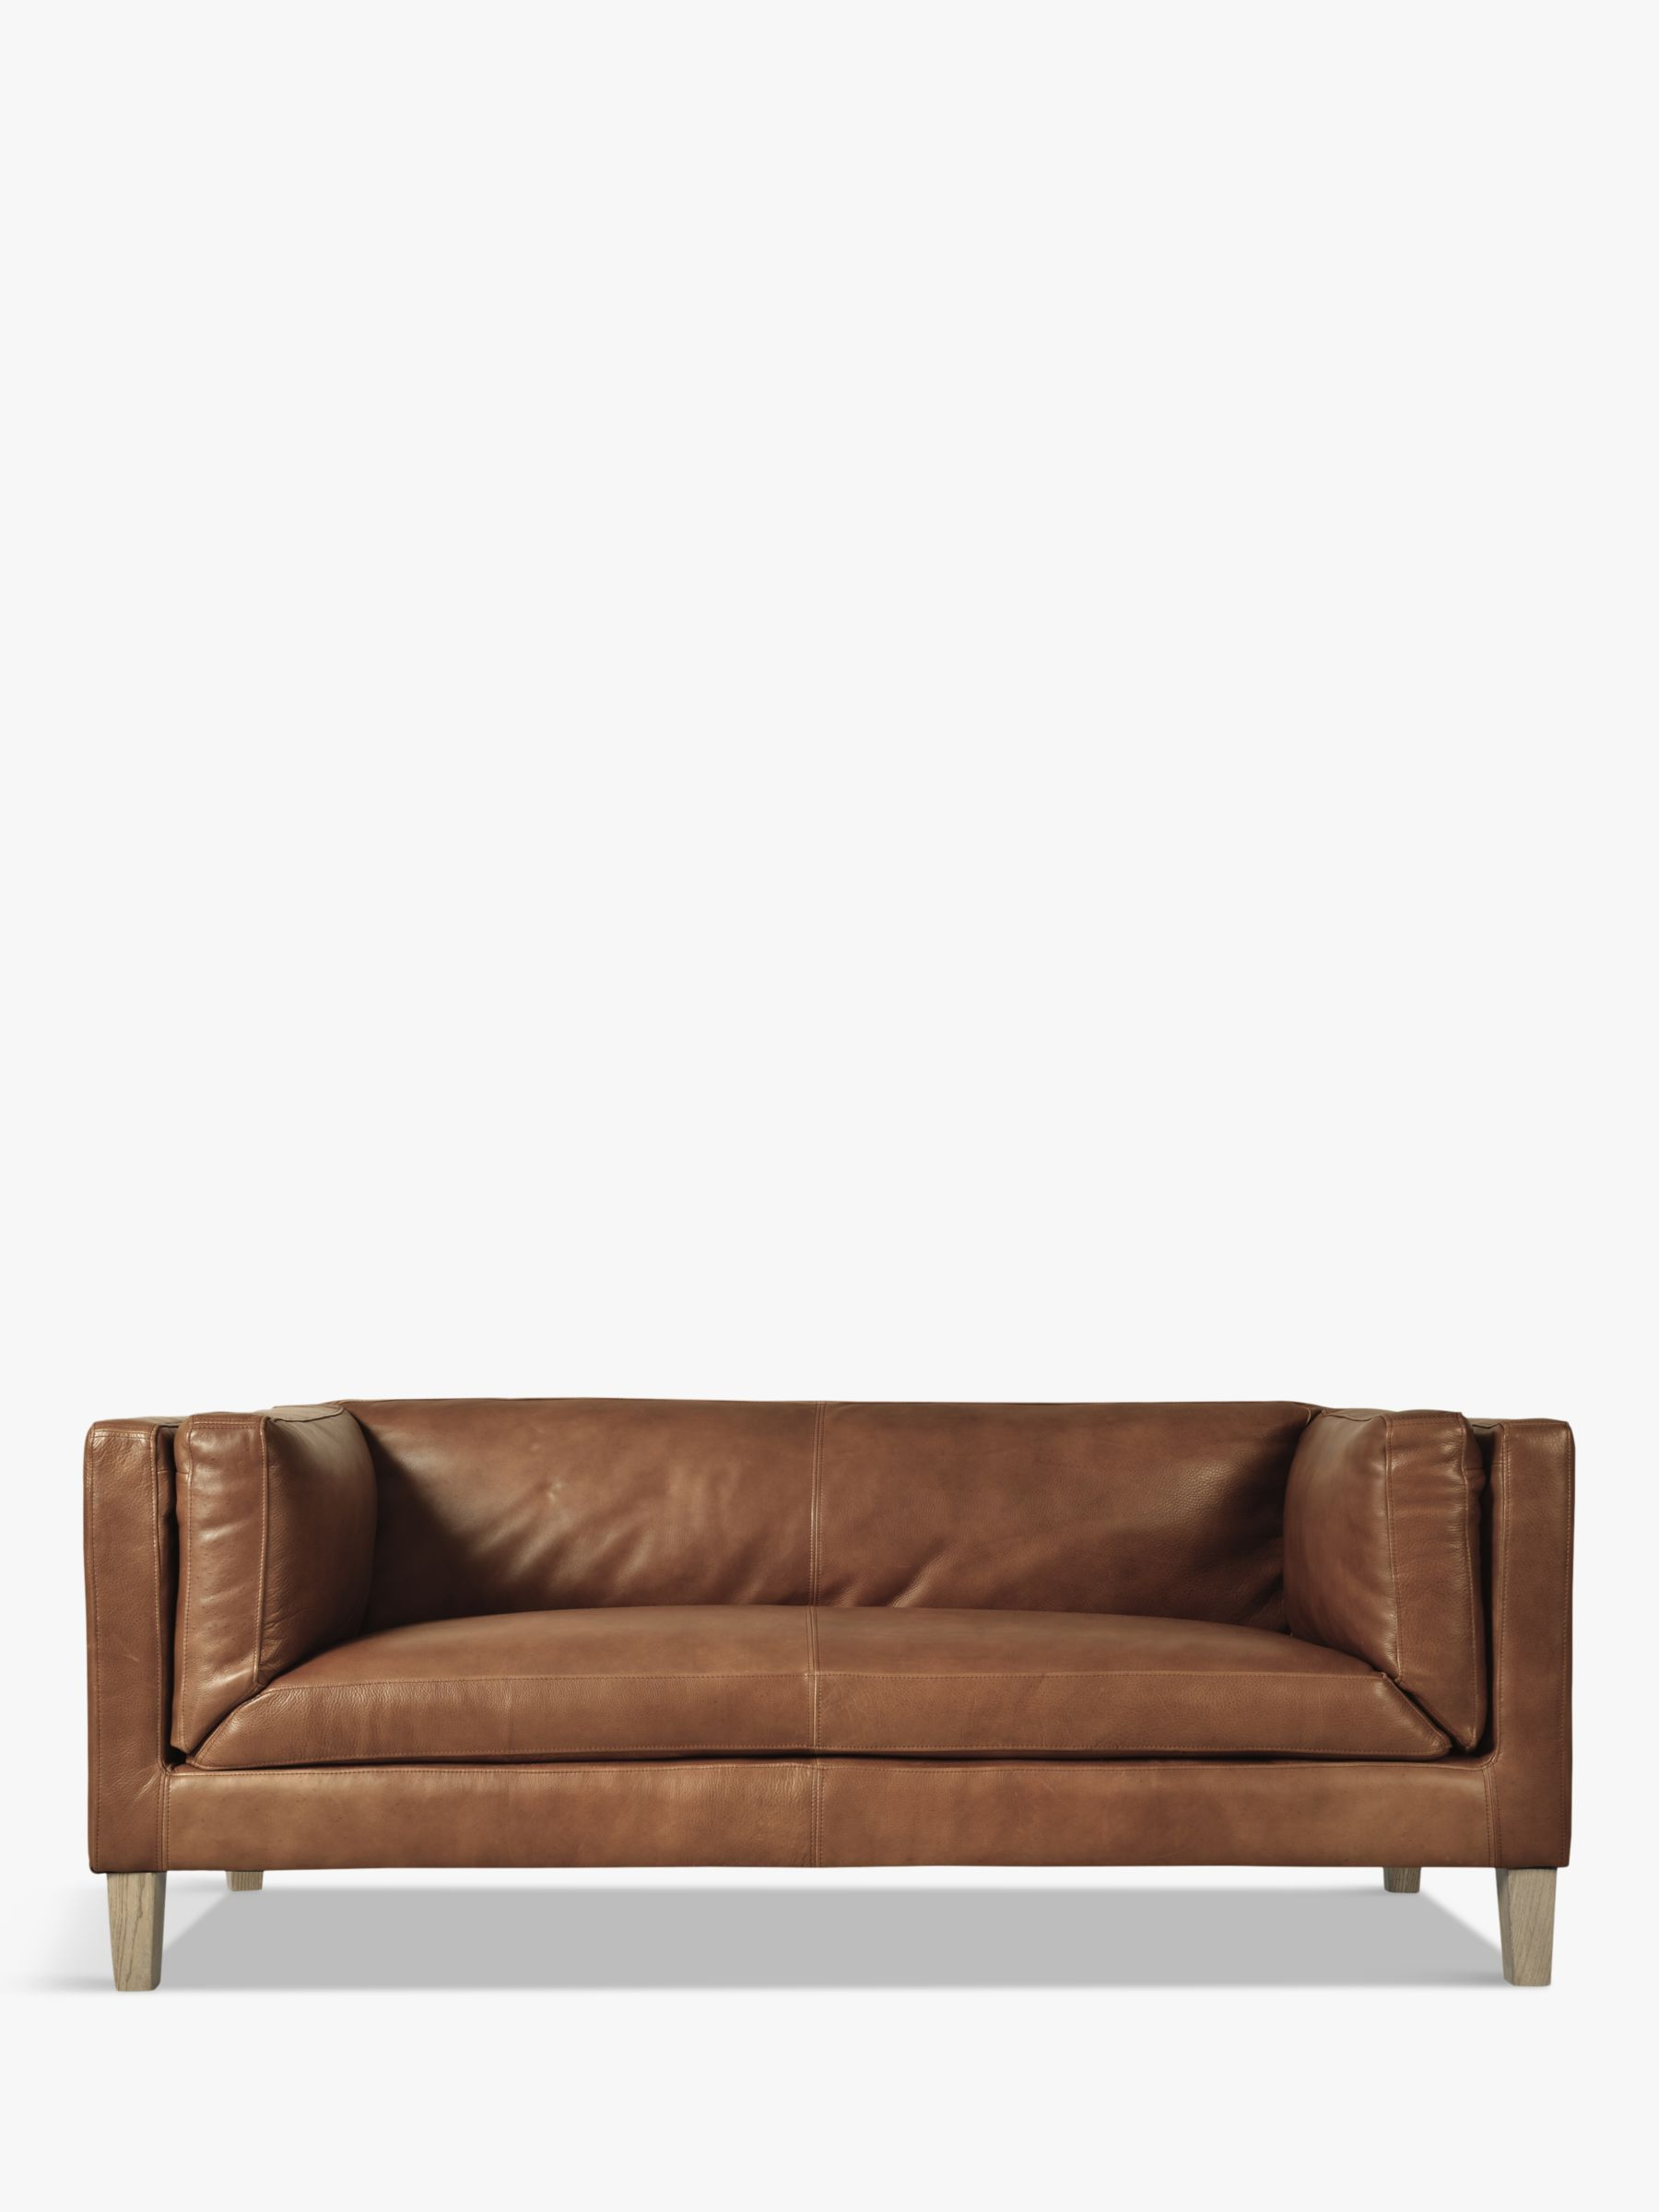 Halo Halo Spencer Medium 2 Seater Leather Sofa, Natural Washed Camel